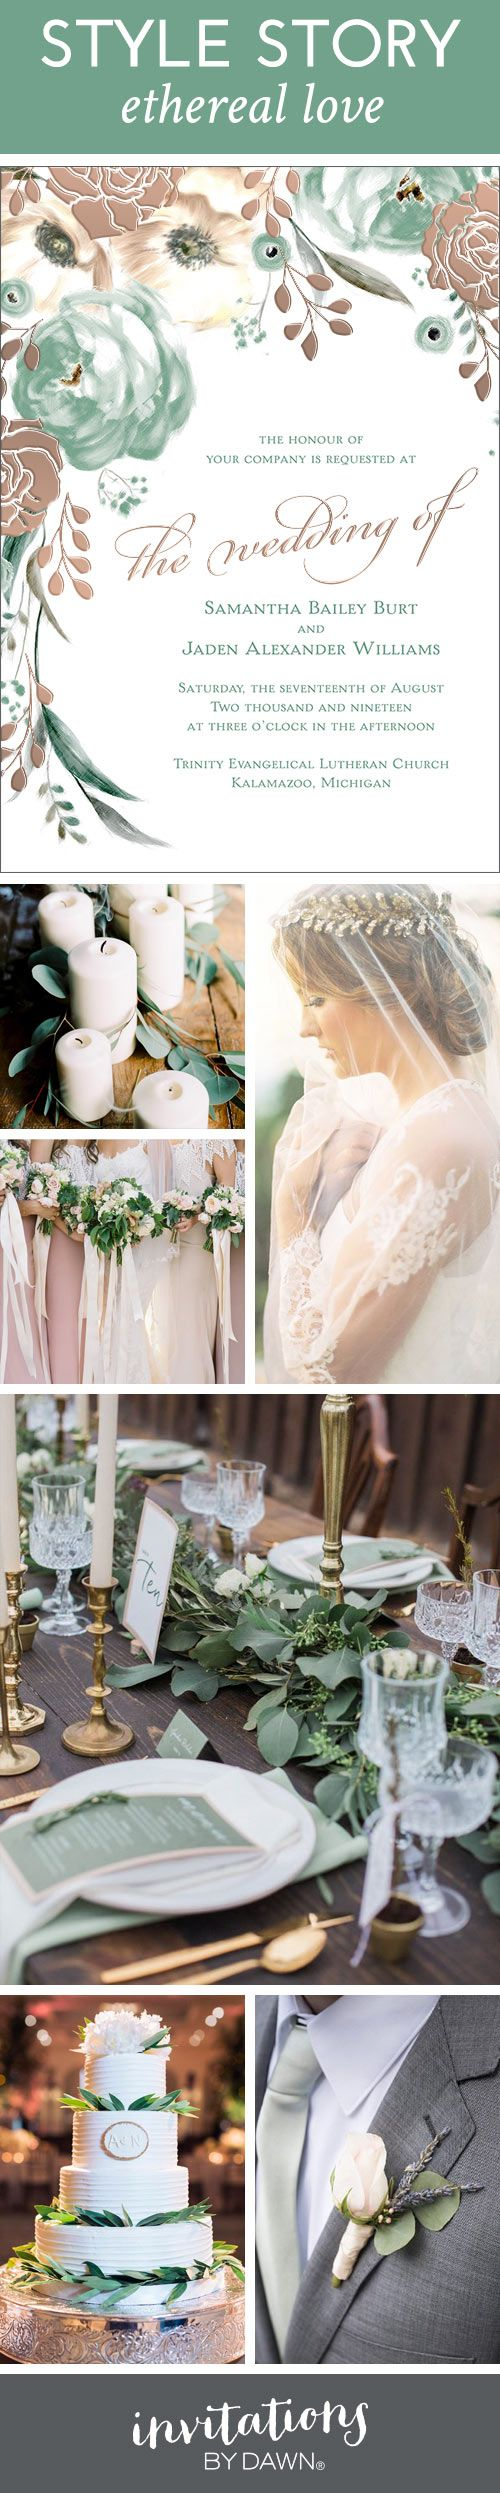 "How would you define ethereal? One dictionary defined it as ""extremely delicate and light in a way that seems too perfect for this world.' We started imagining what that might mean as a wedding style, and now we're sharing our vision with you"